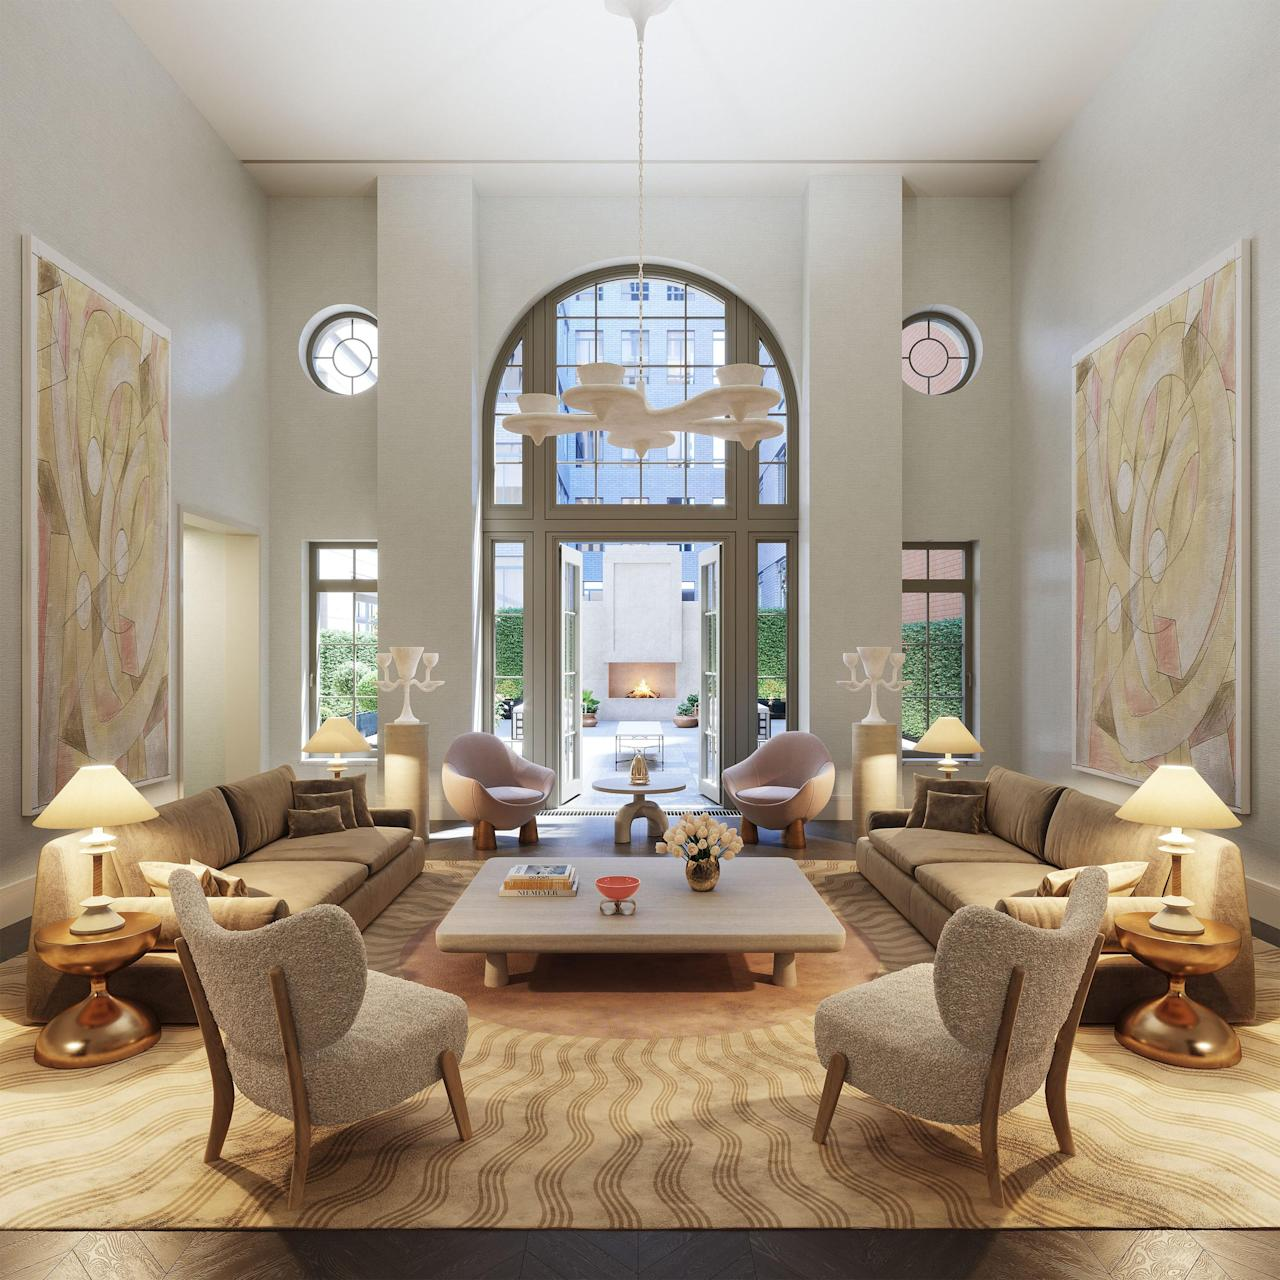 220 Central Park South Apartment: Robert A.M. Stern Set To Launch His Most Distinctive